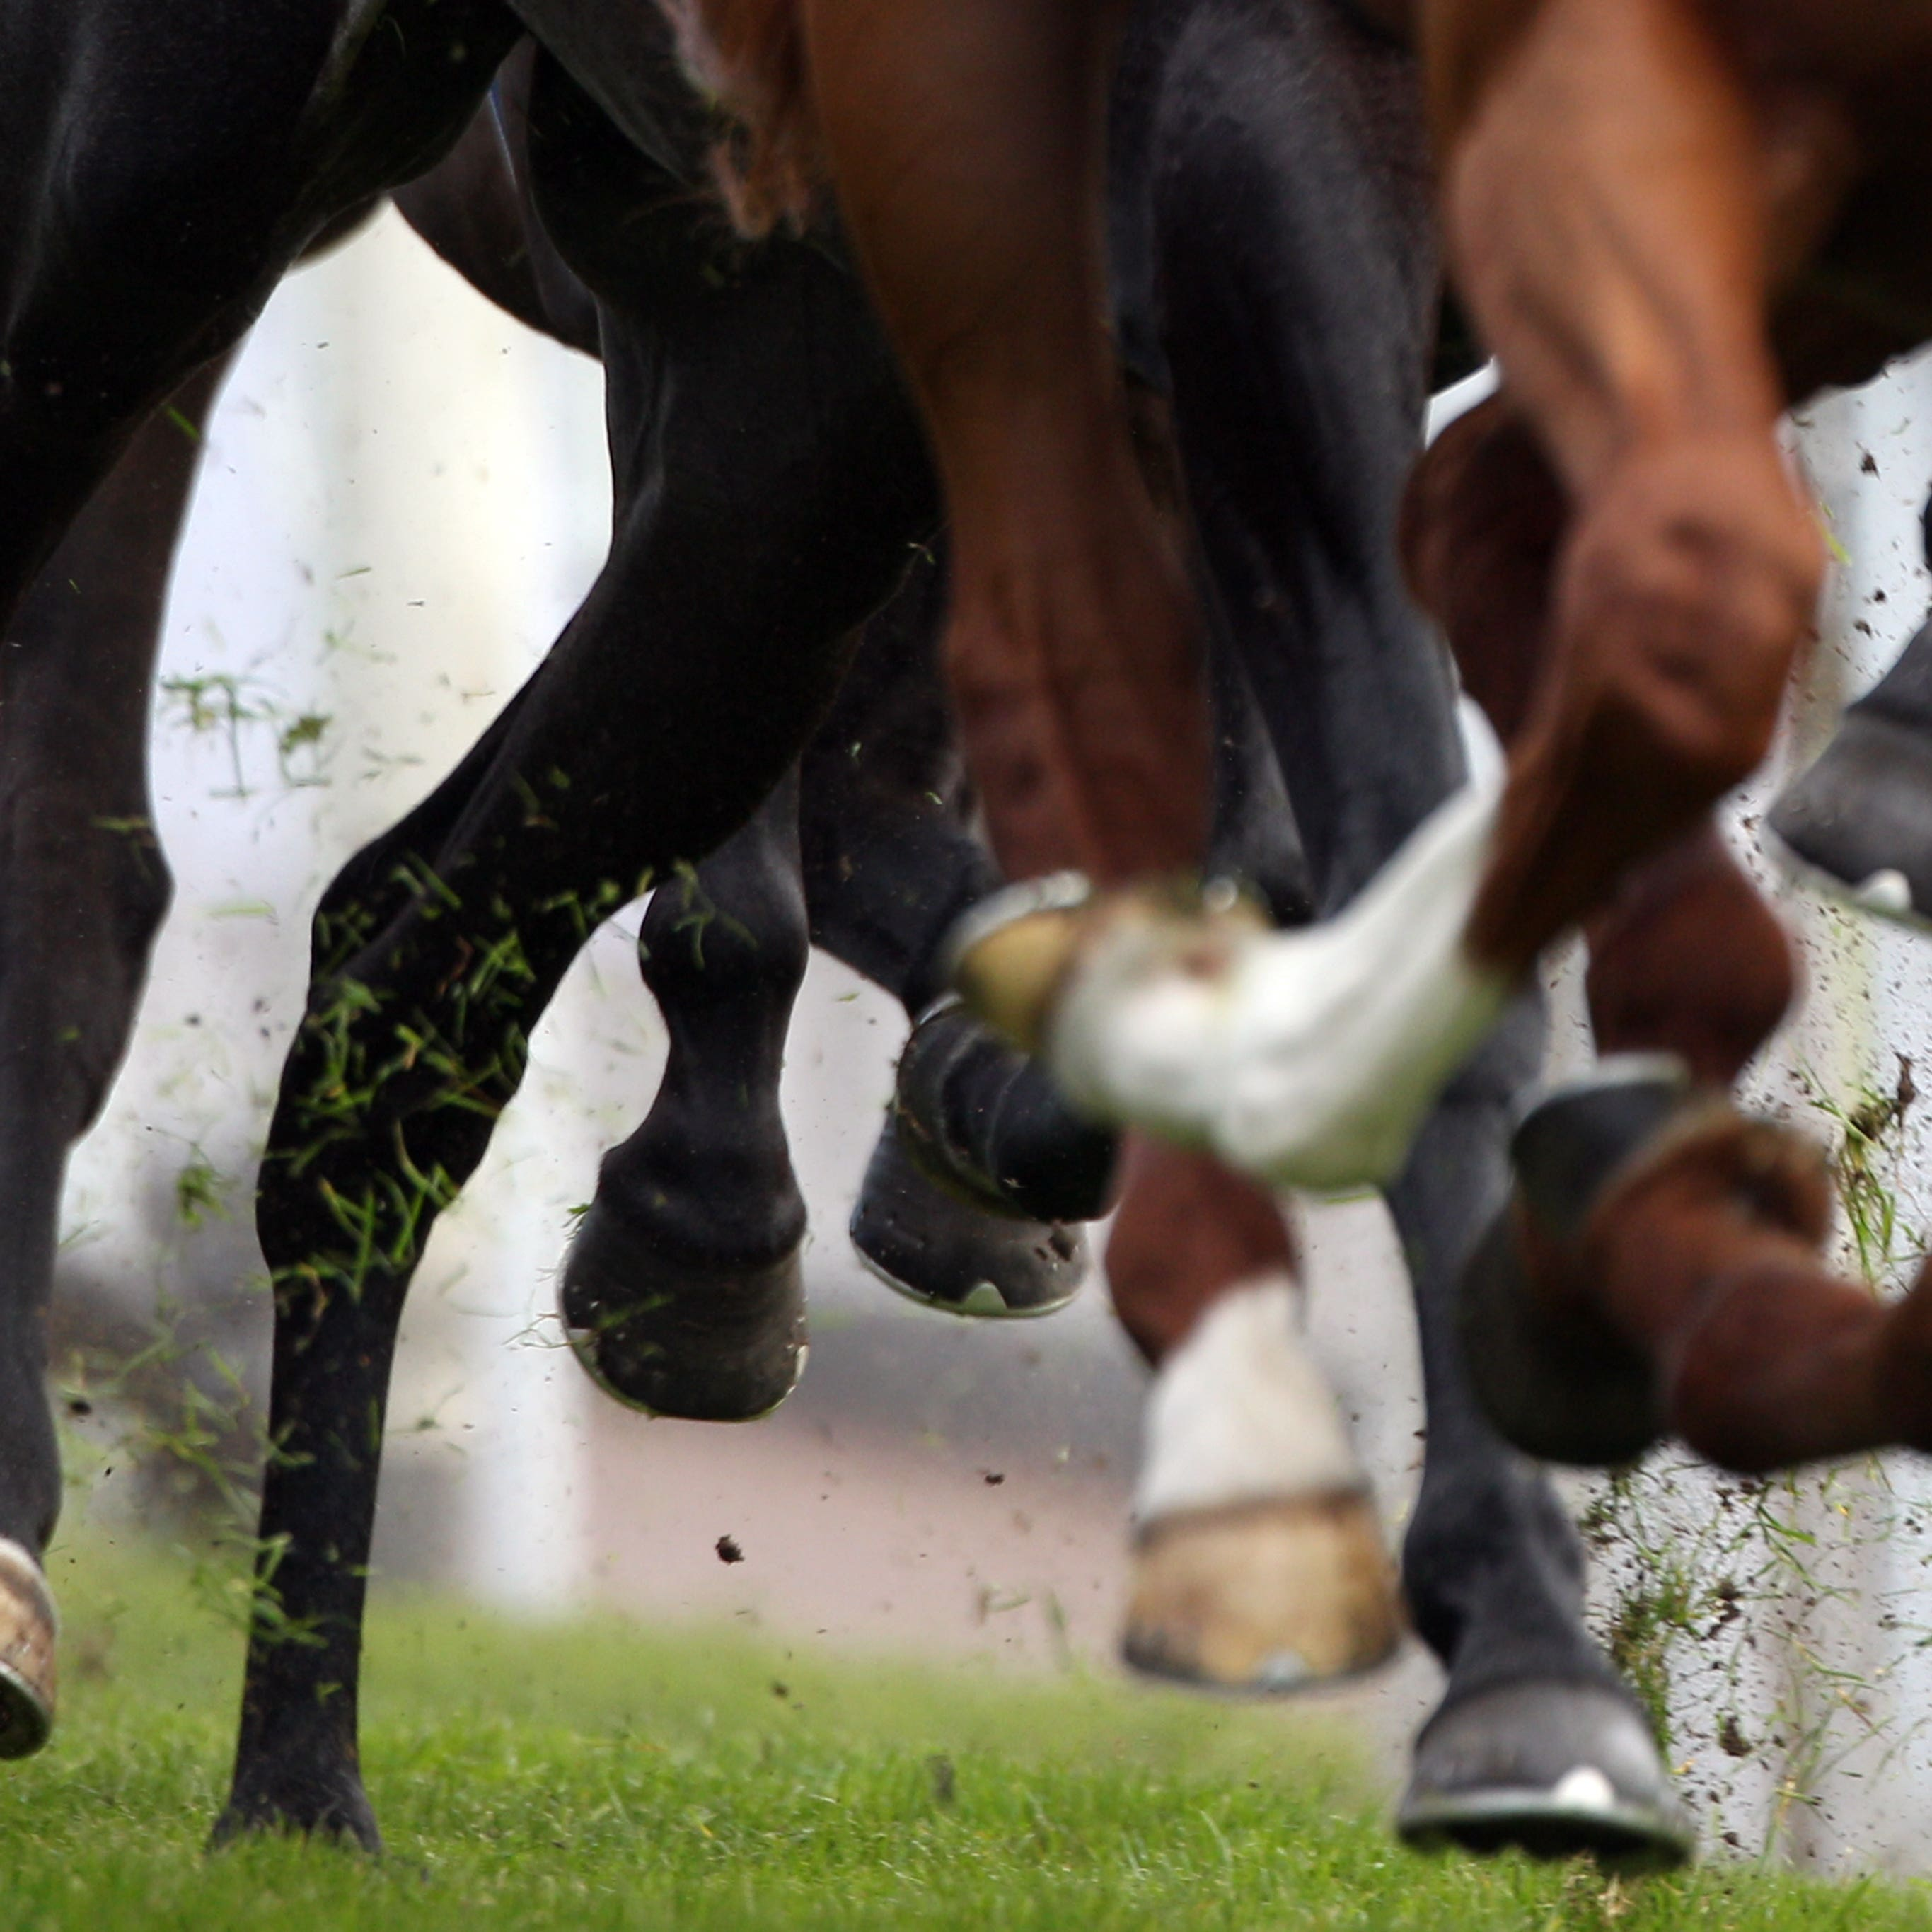 Monday's scheduled meeting at Windsor has been abandoned